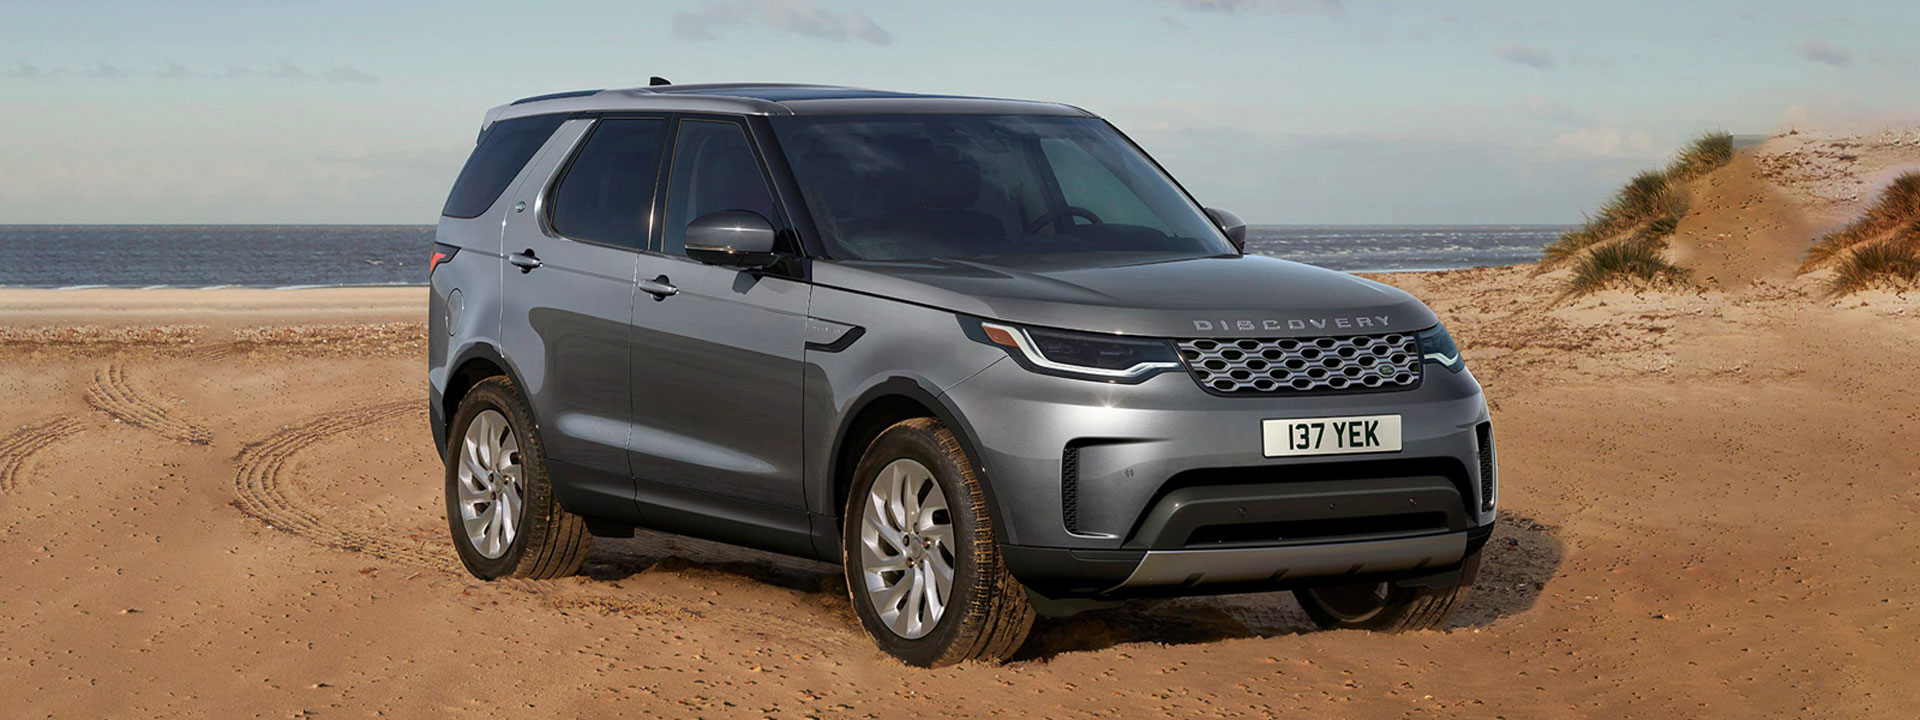 Discovery s